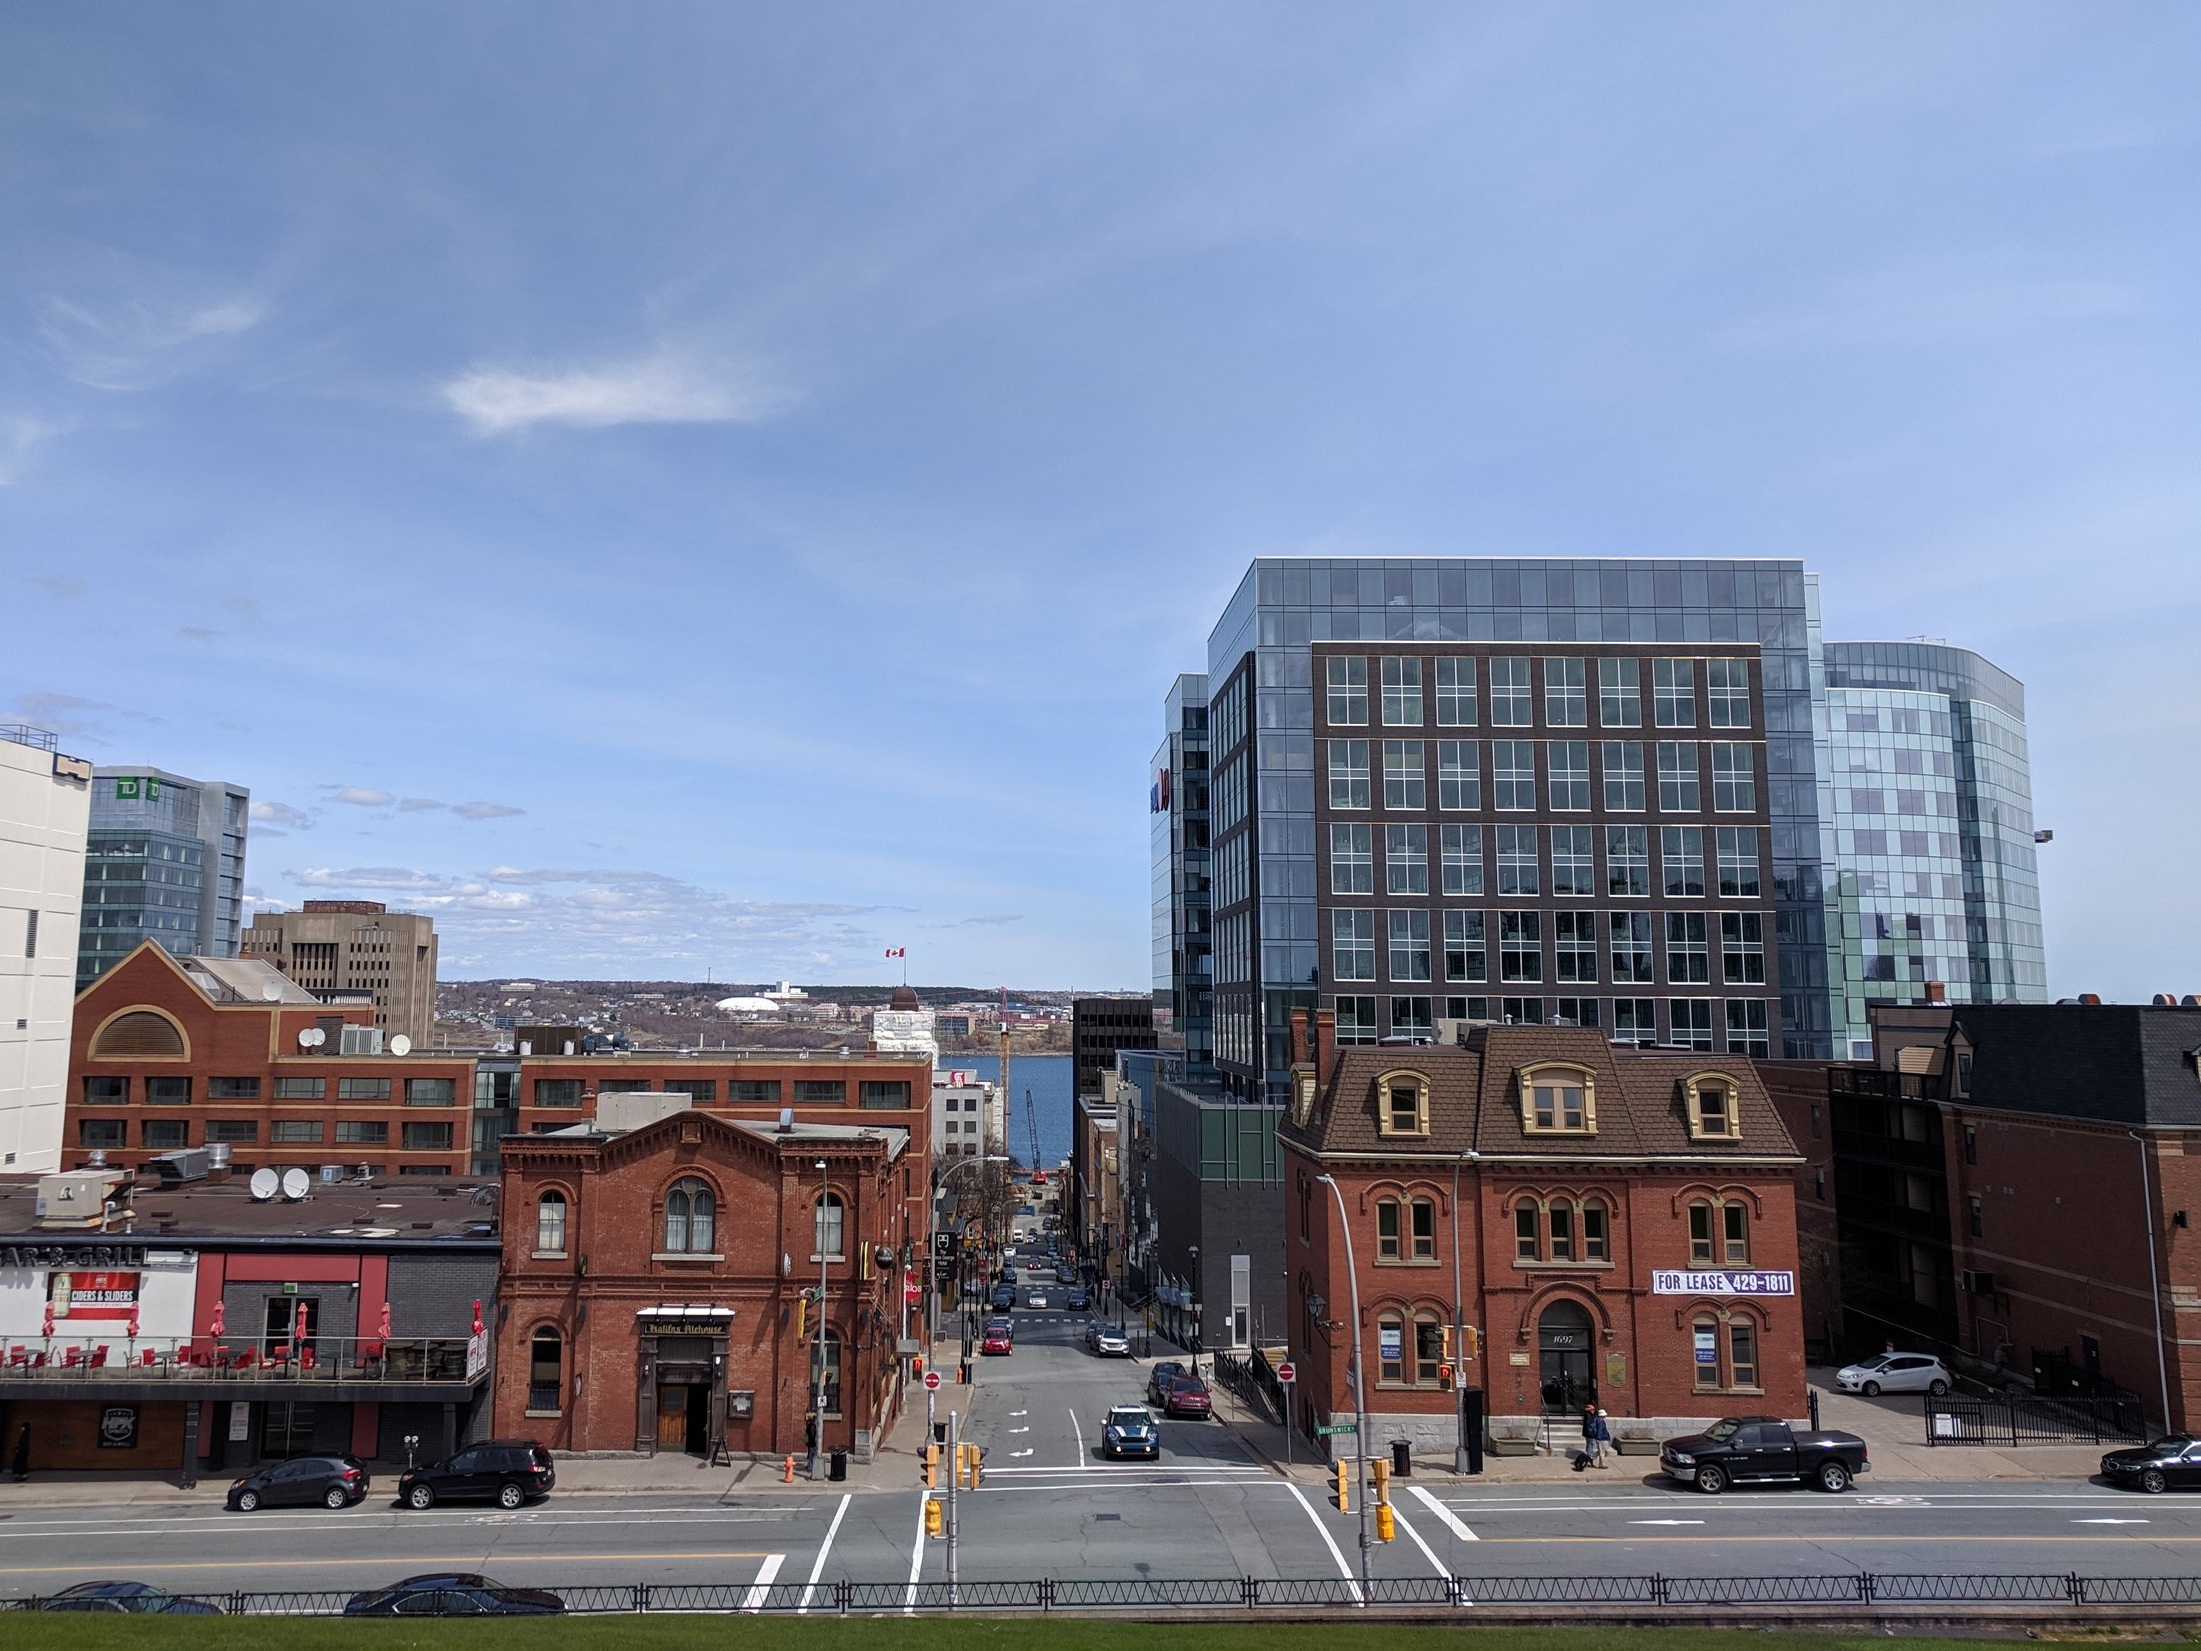 Image+1+-+Halifax+From+Citadel+Hill.jpg